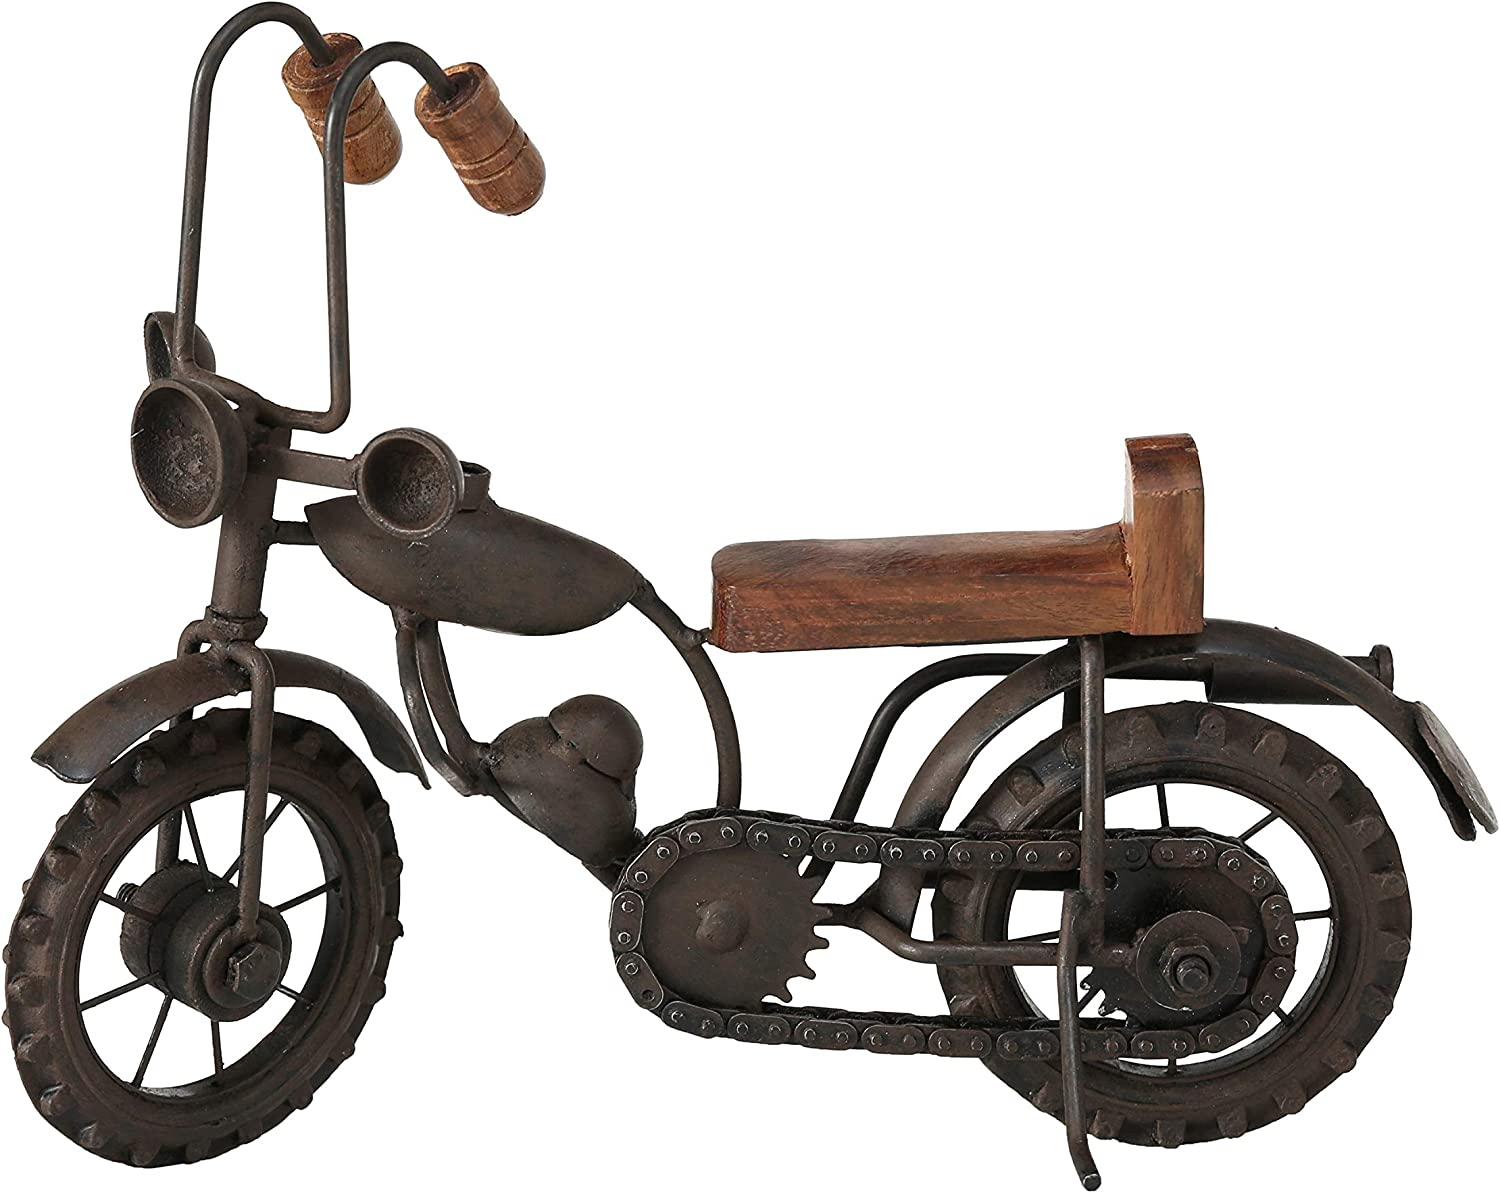 WHW Whole House Worlds Vintage Motorcycle Chopper Figurine, Atelier Wood Finish, Iron Black Metal, Handcrafted, 5.75 x 11.75 Inches